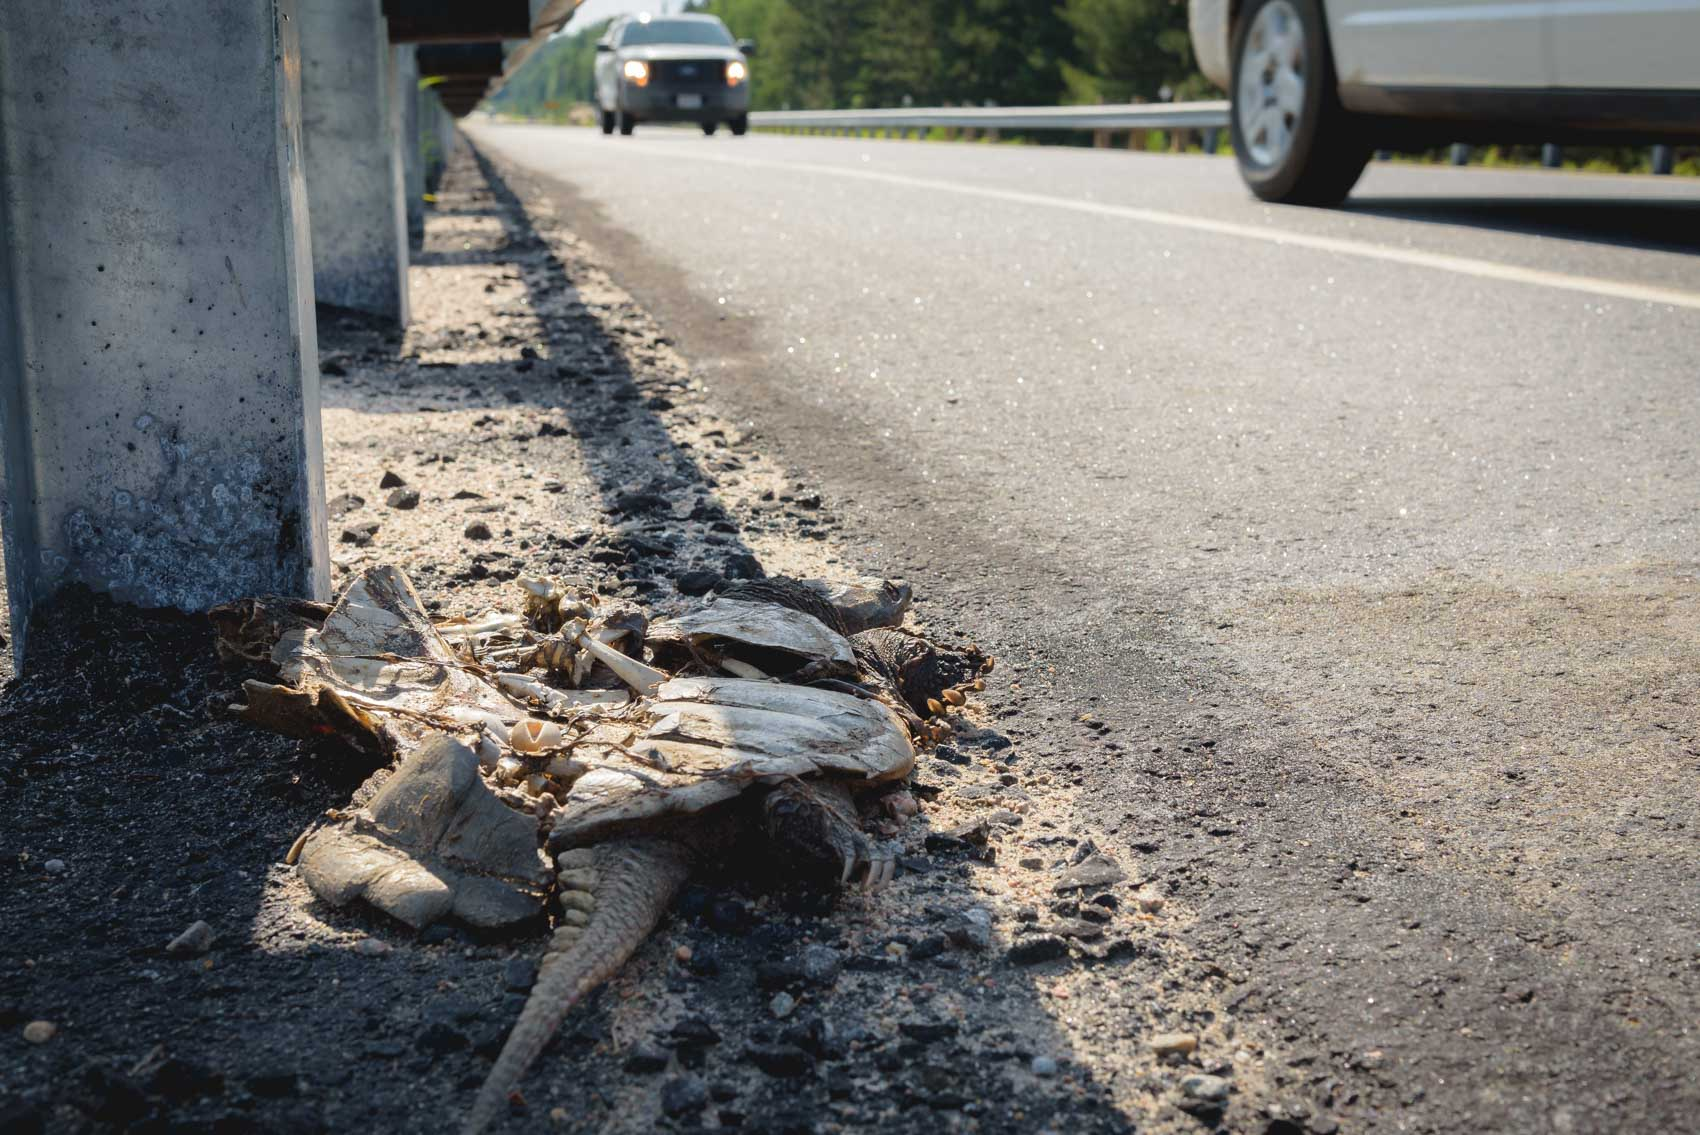 Crushed snapping turtle on side of highway 60 in Algonquin Park © David Coulson Canadian conservation photojournalist